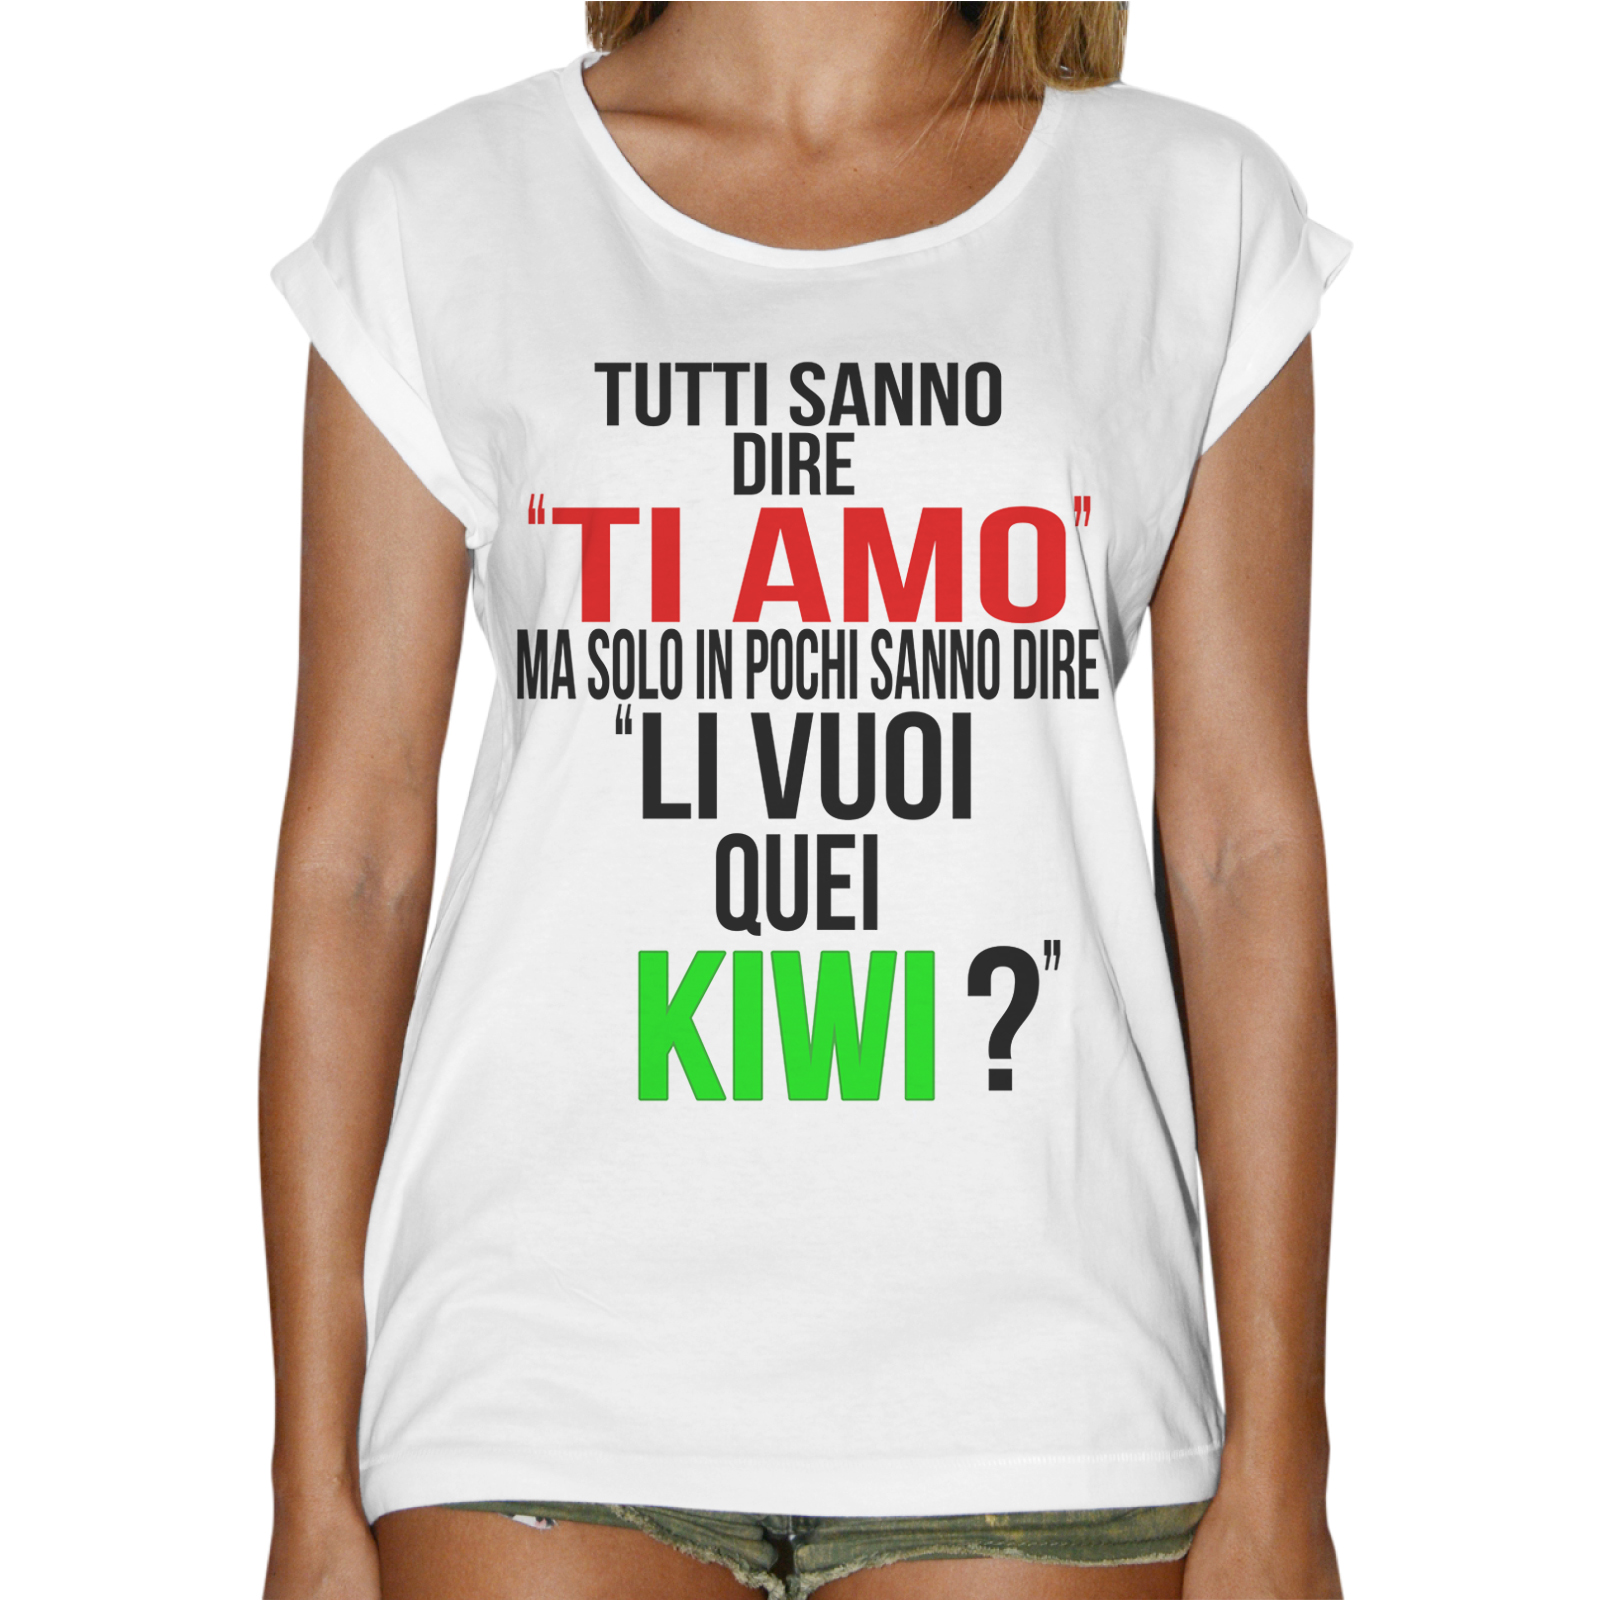 T-Shirt Donna Fashion LI VUOI QUEI KIWI